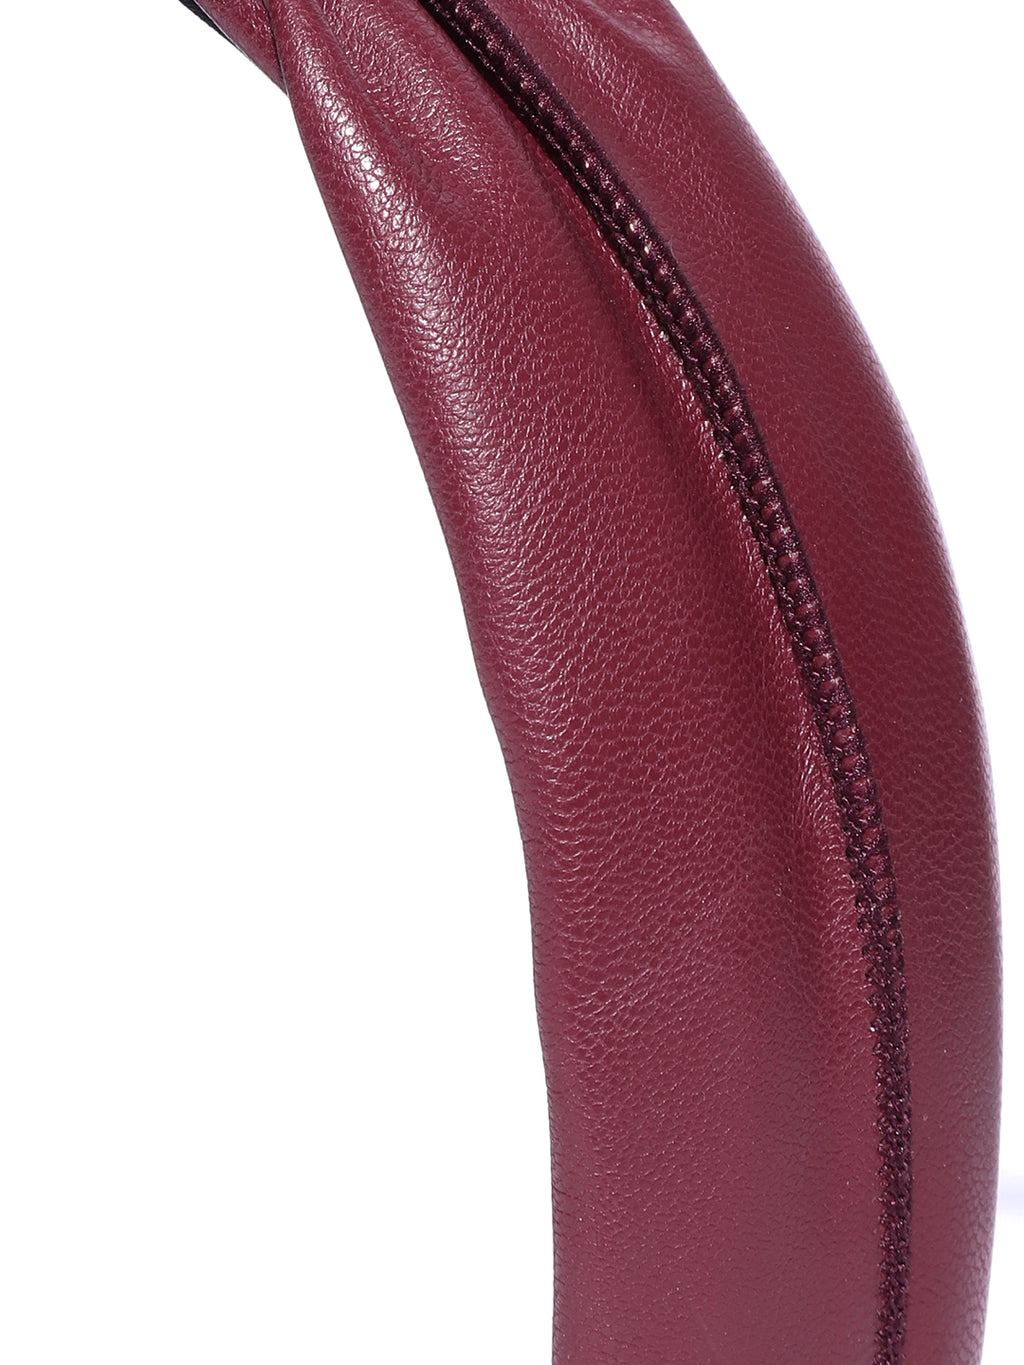 Blueberry red synthetic leather knot hairband